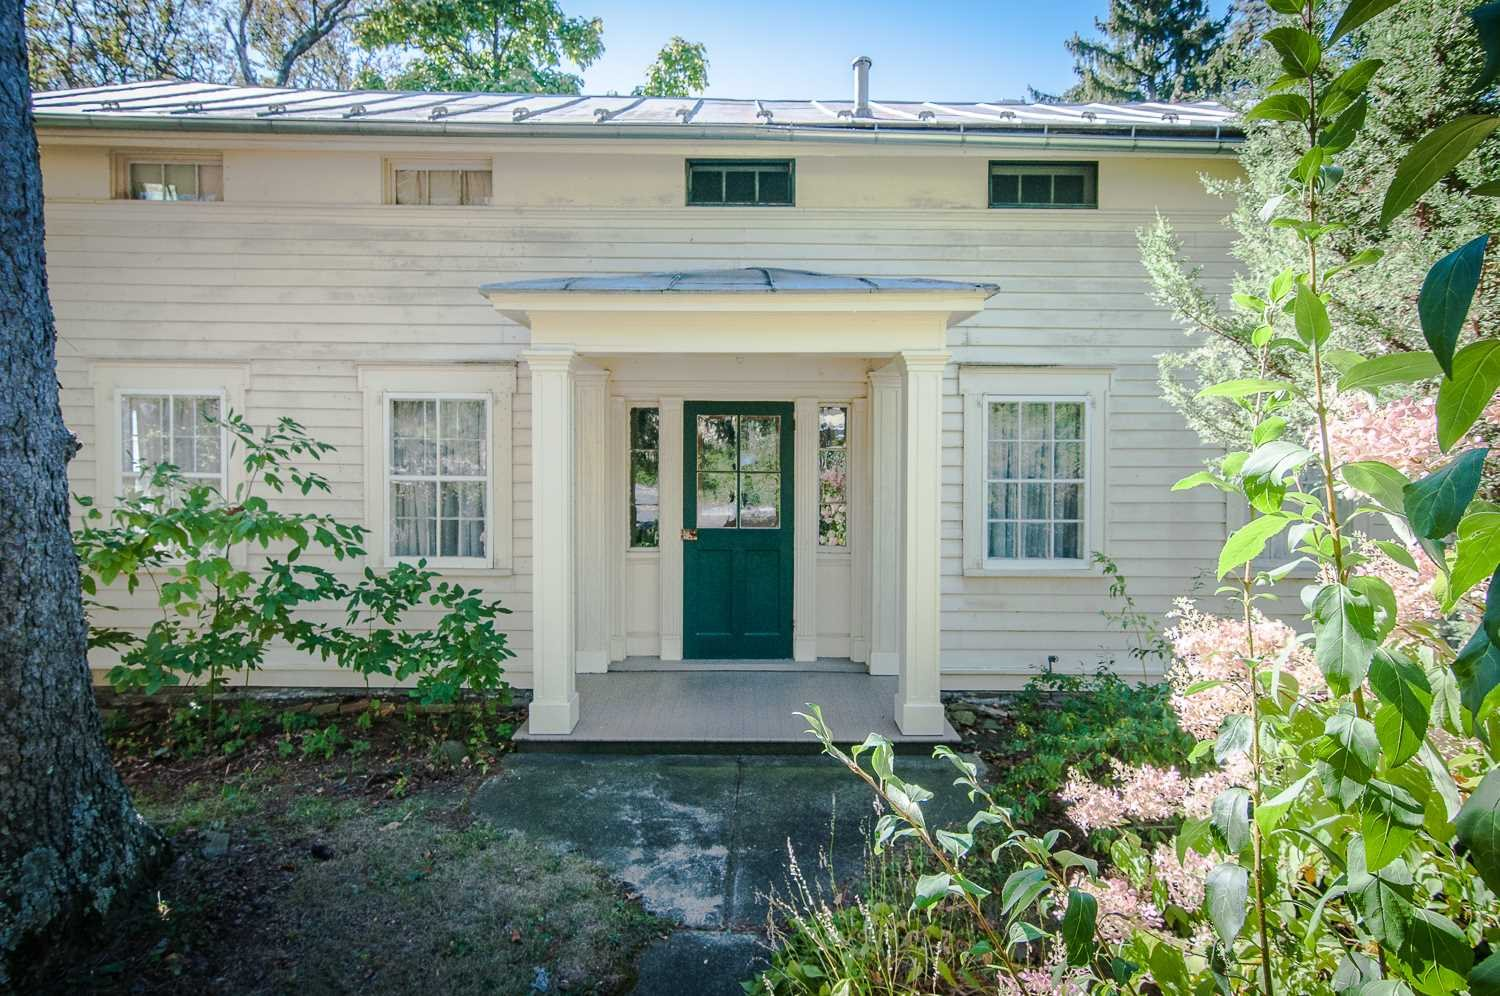 Single Family Home for Sale at 1077 RIVER Road 1077 RIVER Road Red Hook, New York 12507 United States